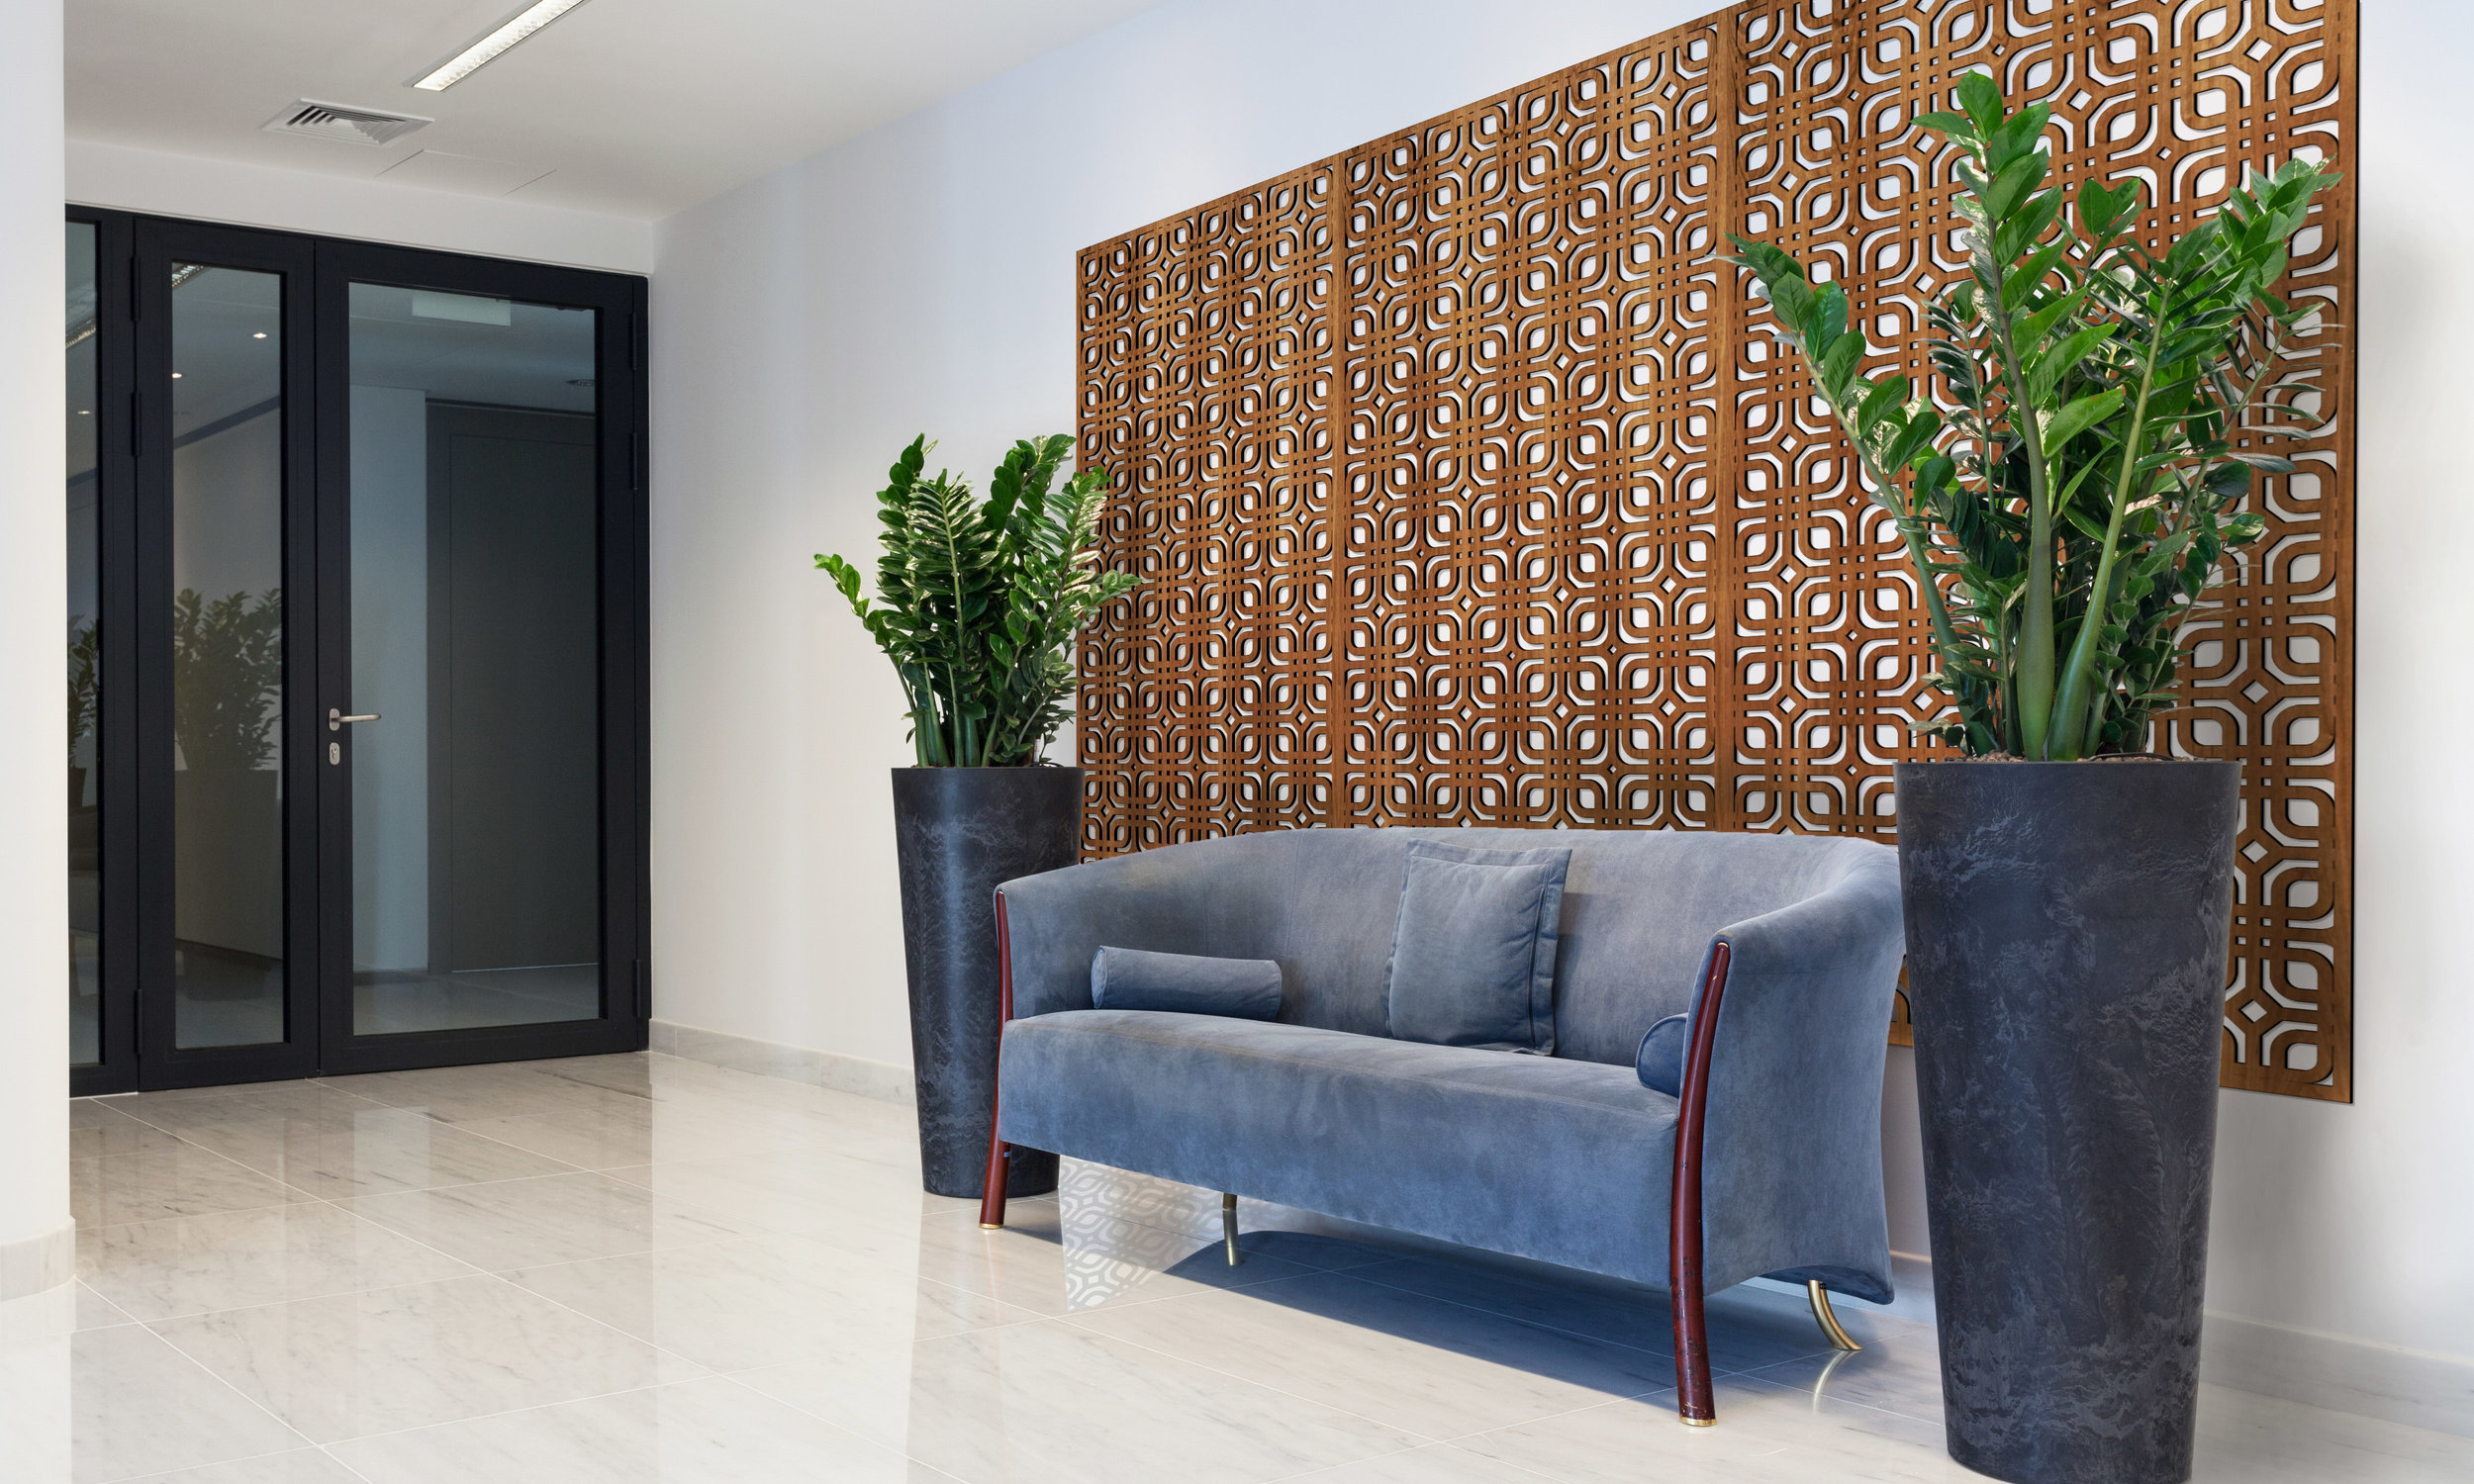 Installation Rendering A   Rounded Squares decorative office wall panel - shown in Cherry